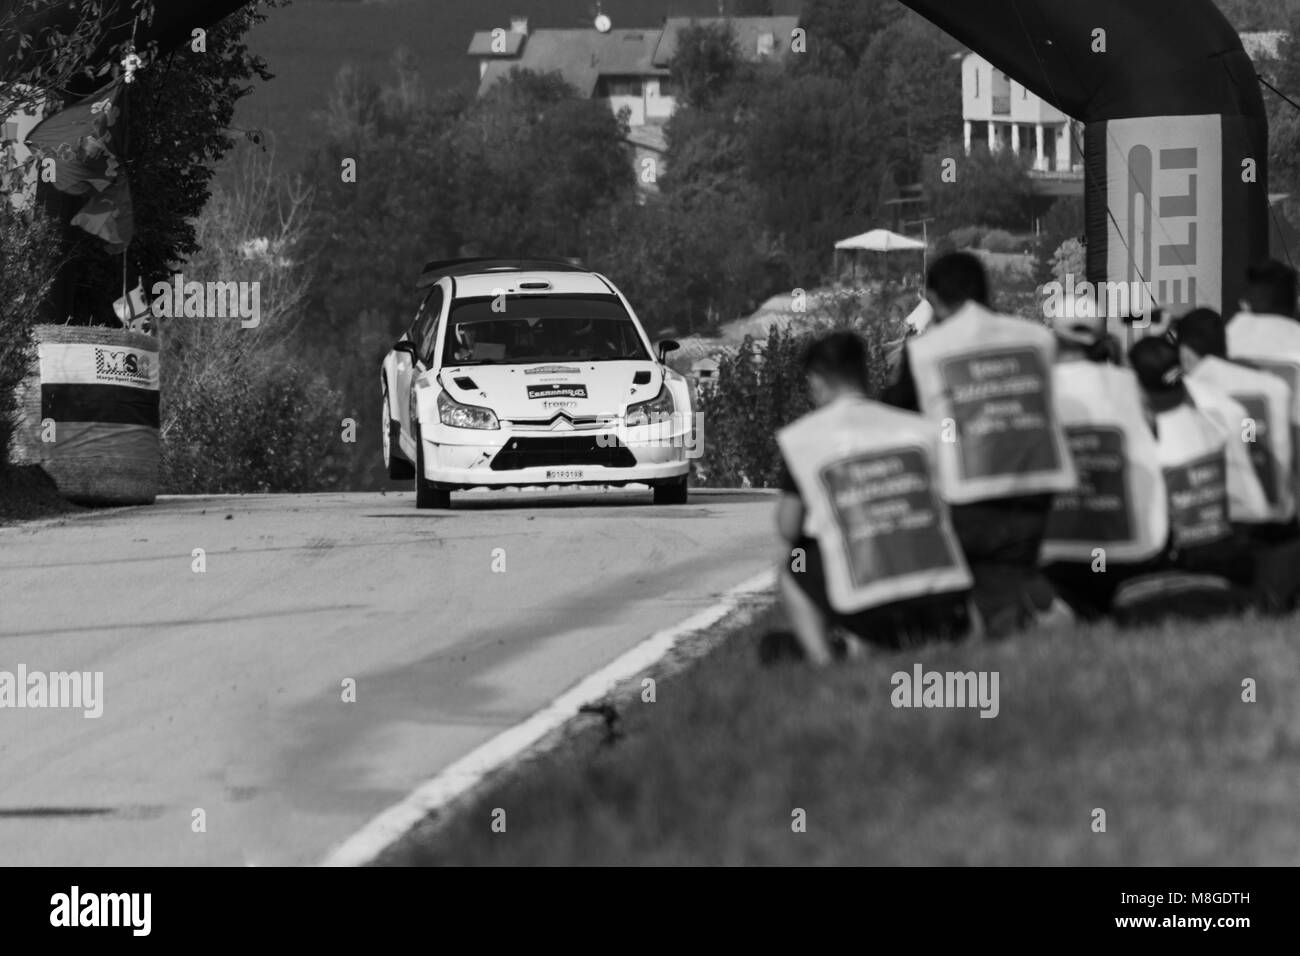 SANMARINO, SANMARINO - OCT 21, 2017 : CITROEN C4 WRC 2006 old racing car rally historical race - Stock Image